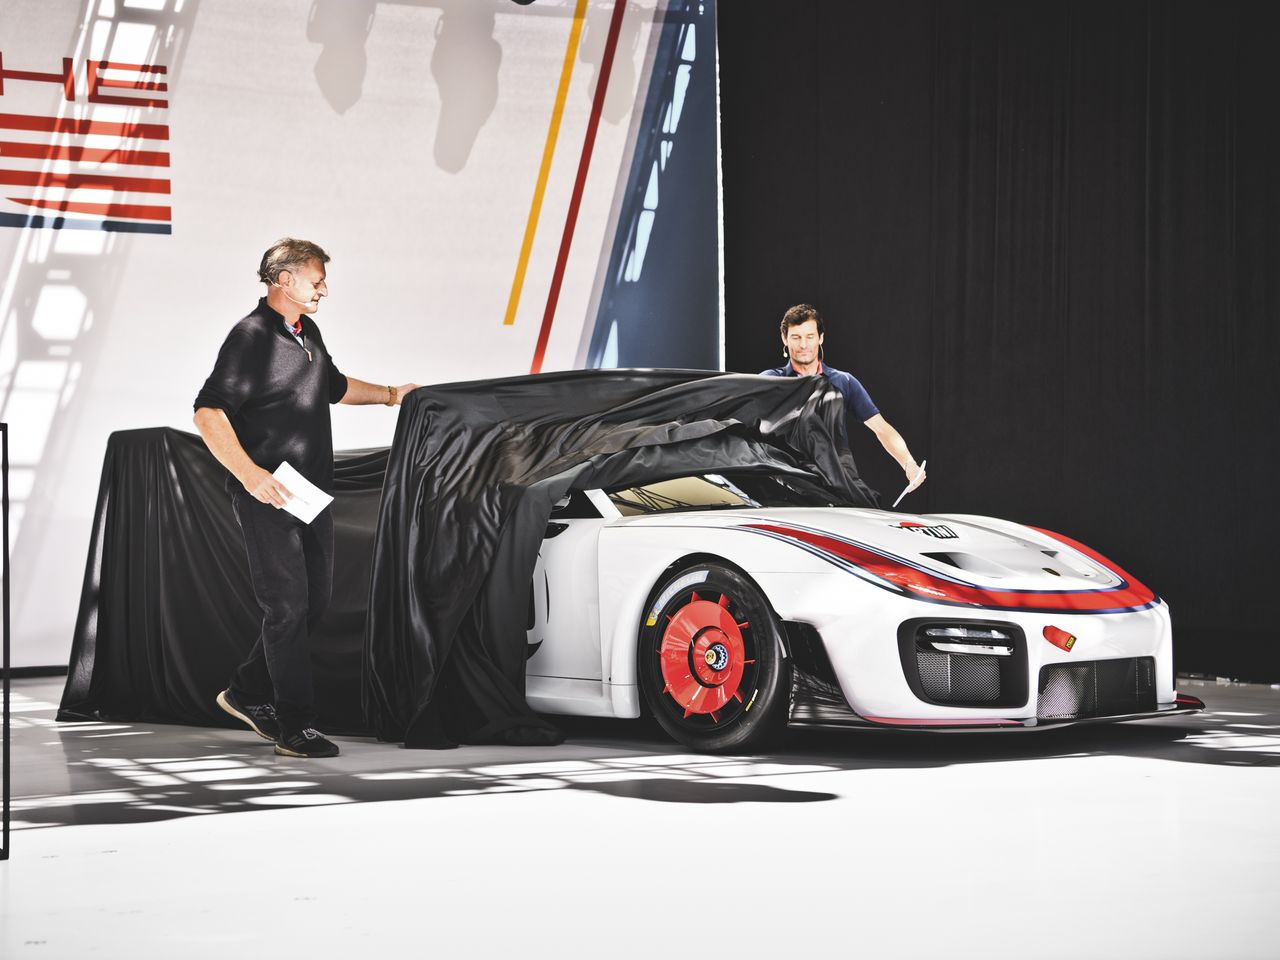 Detlev von Platen (left), Porsche Board Member for Sales, joins Mark Webber to present the latest edition of the legendary race car of the 1970s, the Porsche 935.